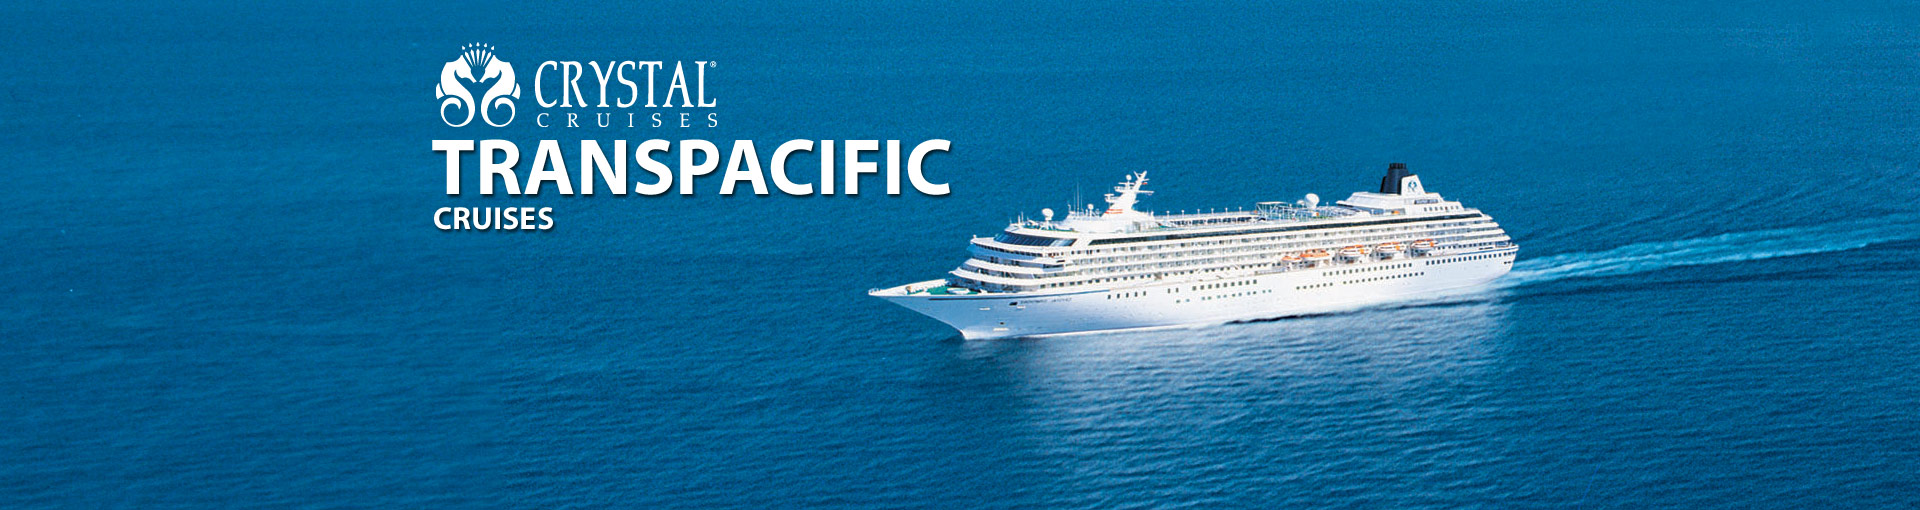 Crystal Cruises Transpacific Cruises